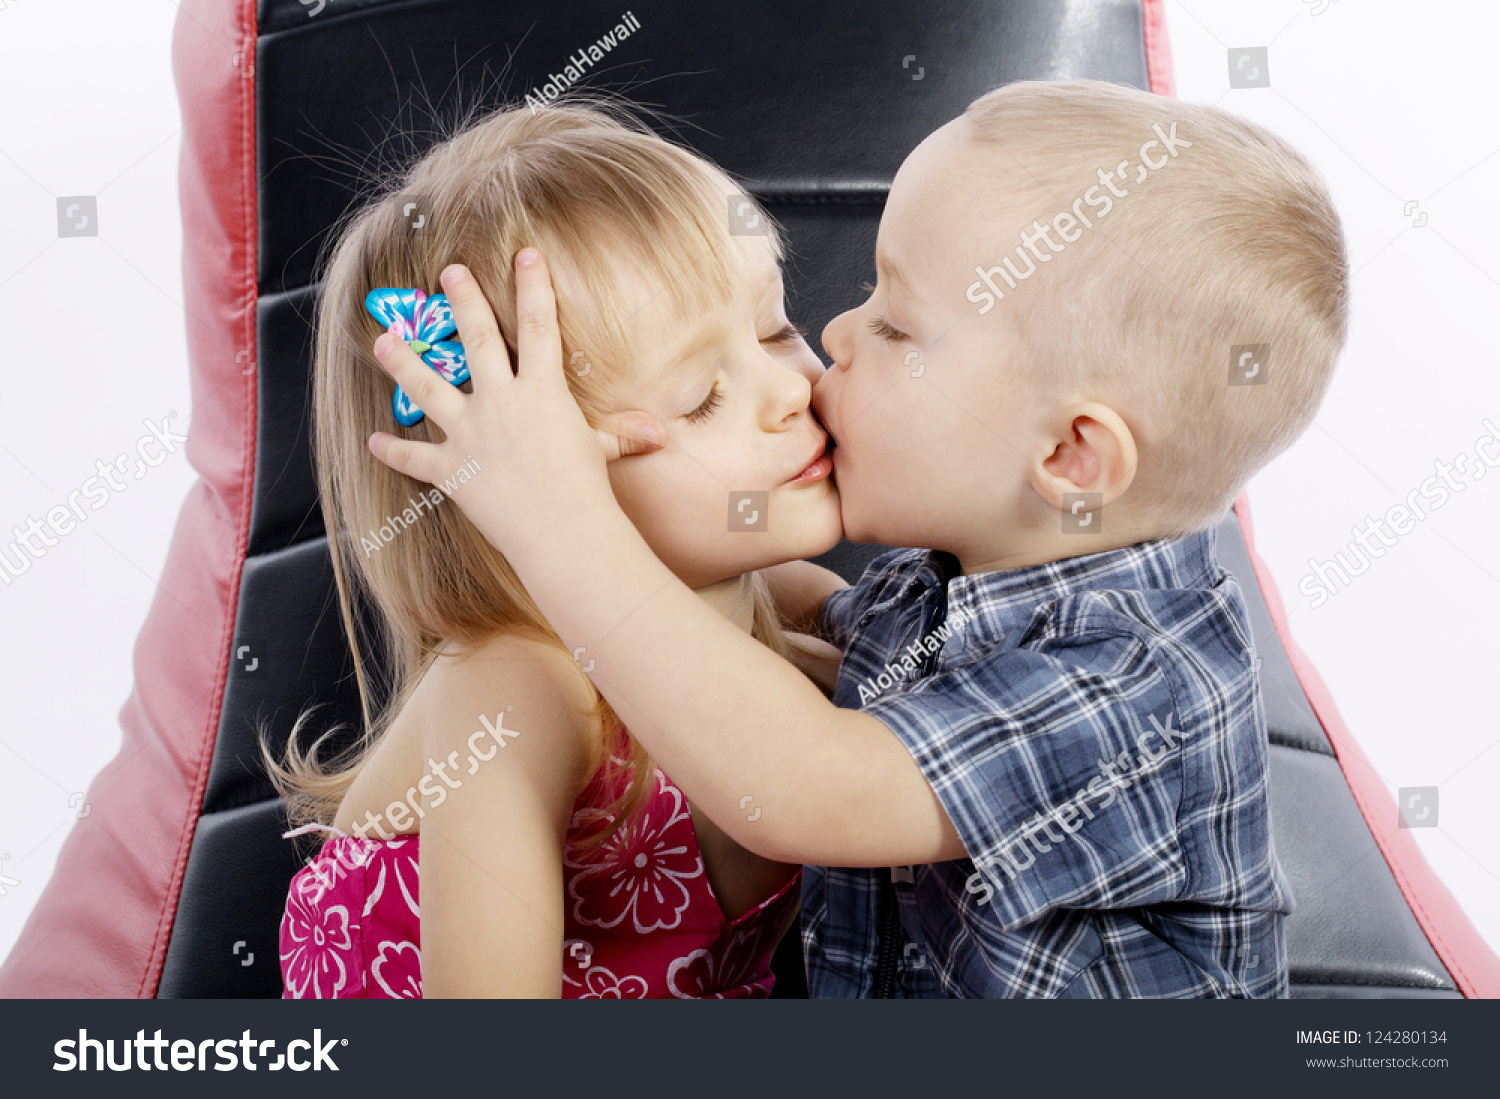 Find young boy and girl Stock Images in HD and millions of other royalty-free stock photos, illustrations, and vectors in the Shutterstock collection. Thousands of new, high-quality pictures added every day.